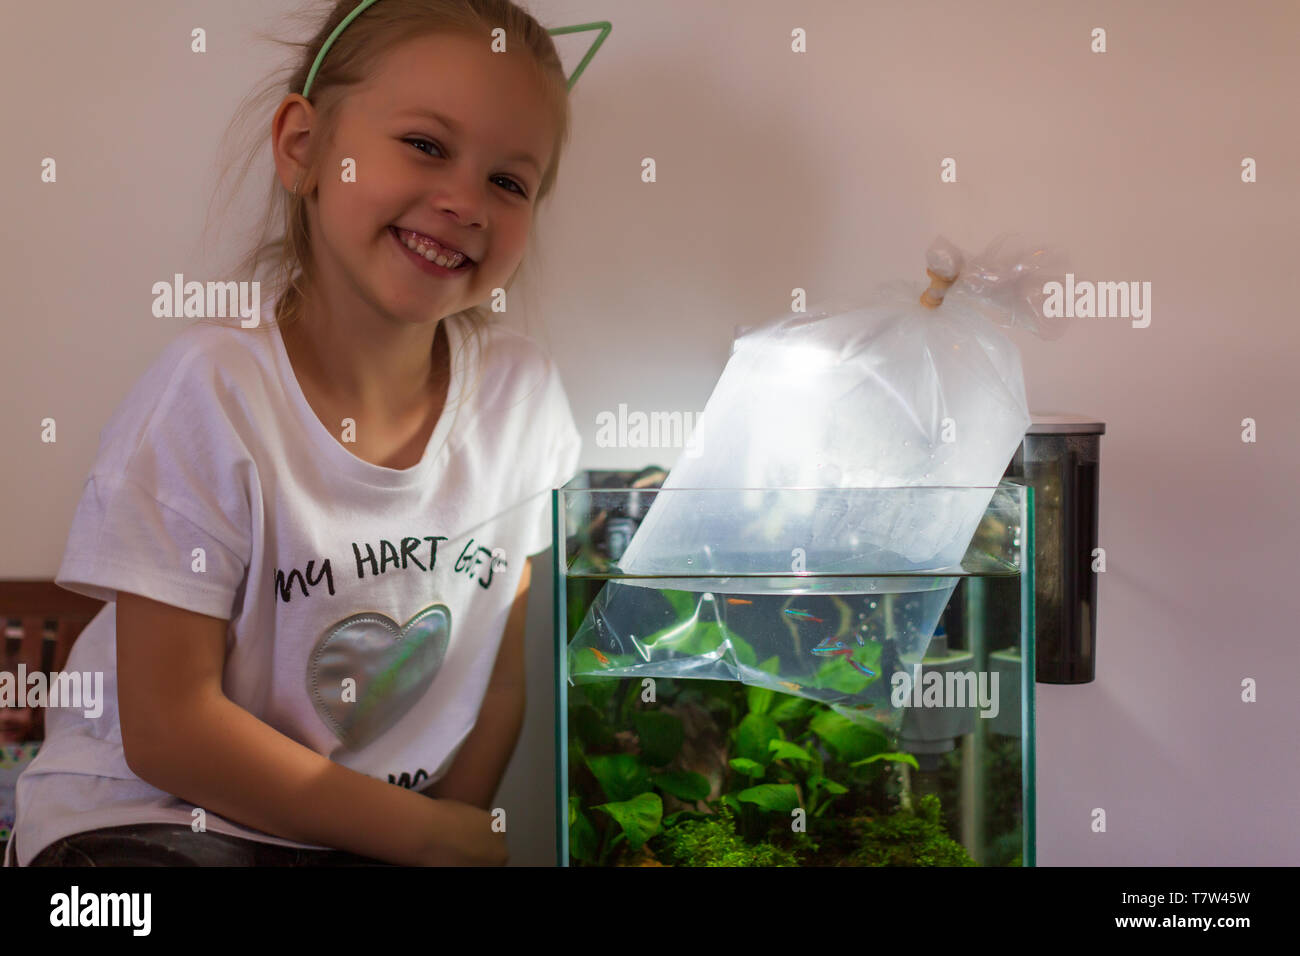 girl holding a plastic bag with a new fish they got in a zoo store ready to put it into a home aquarium - Stock Image